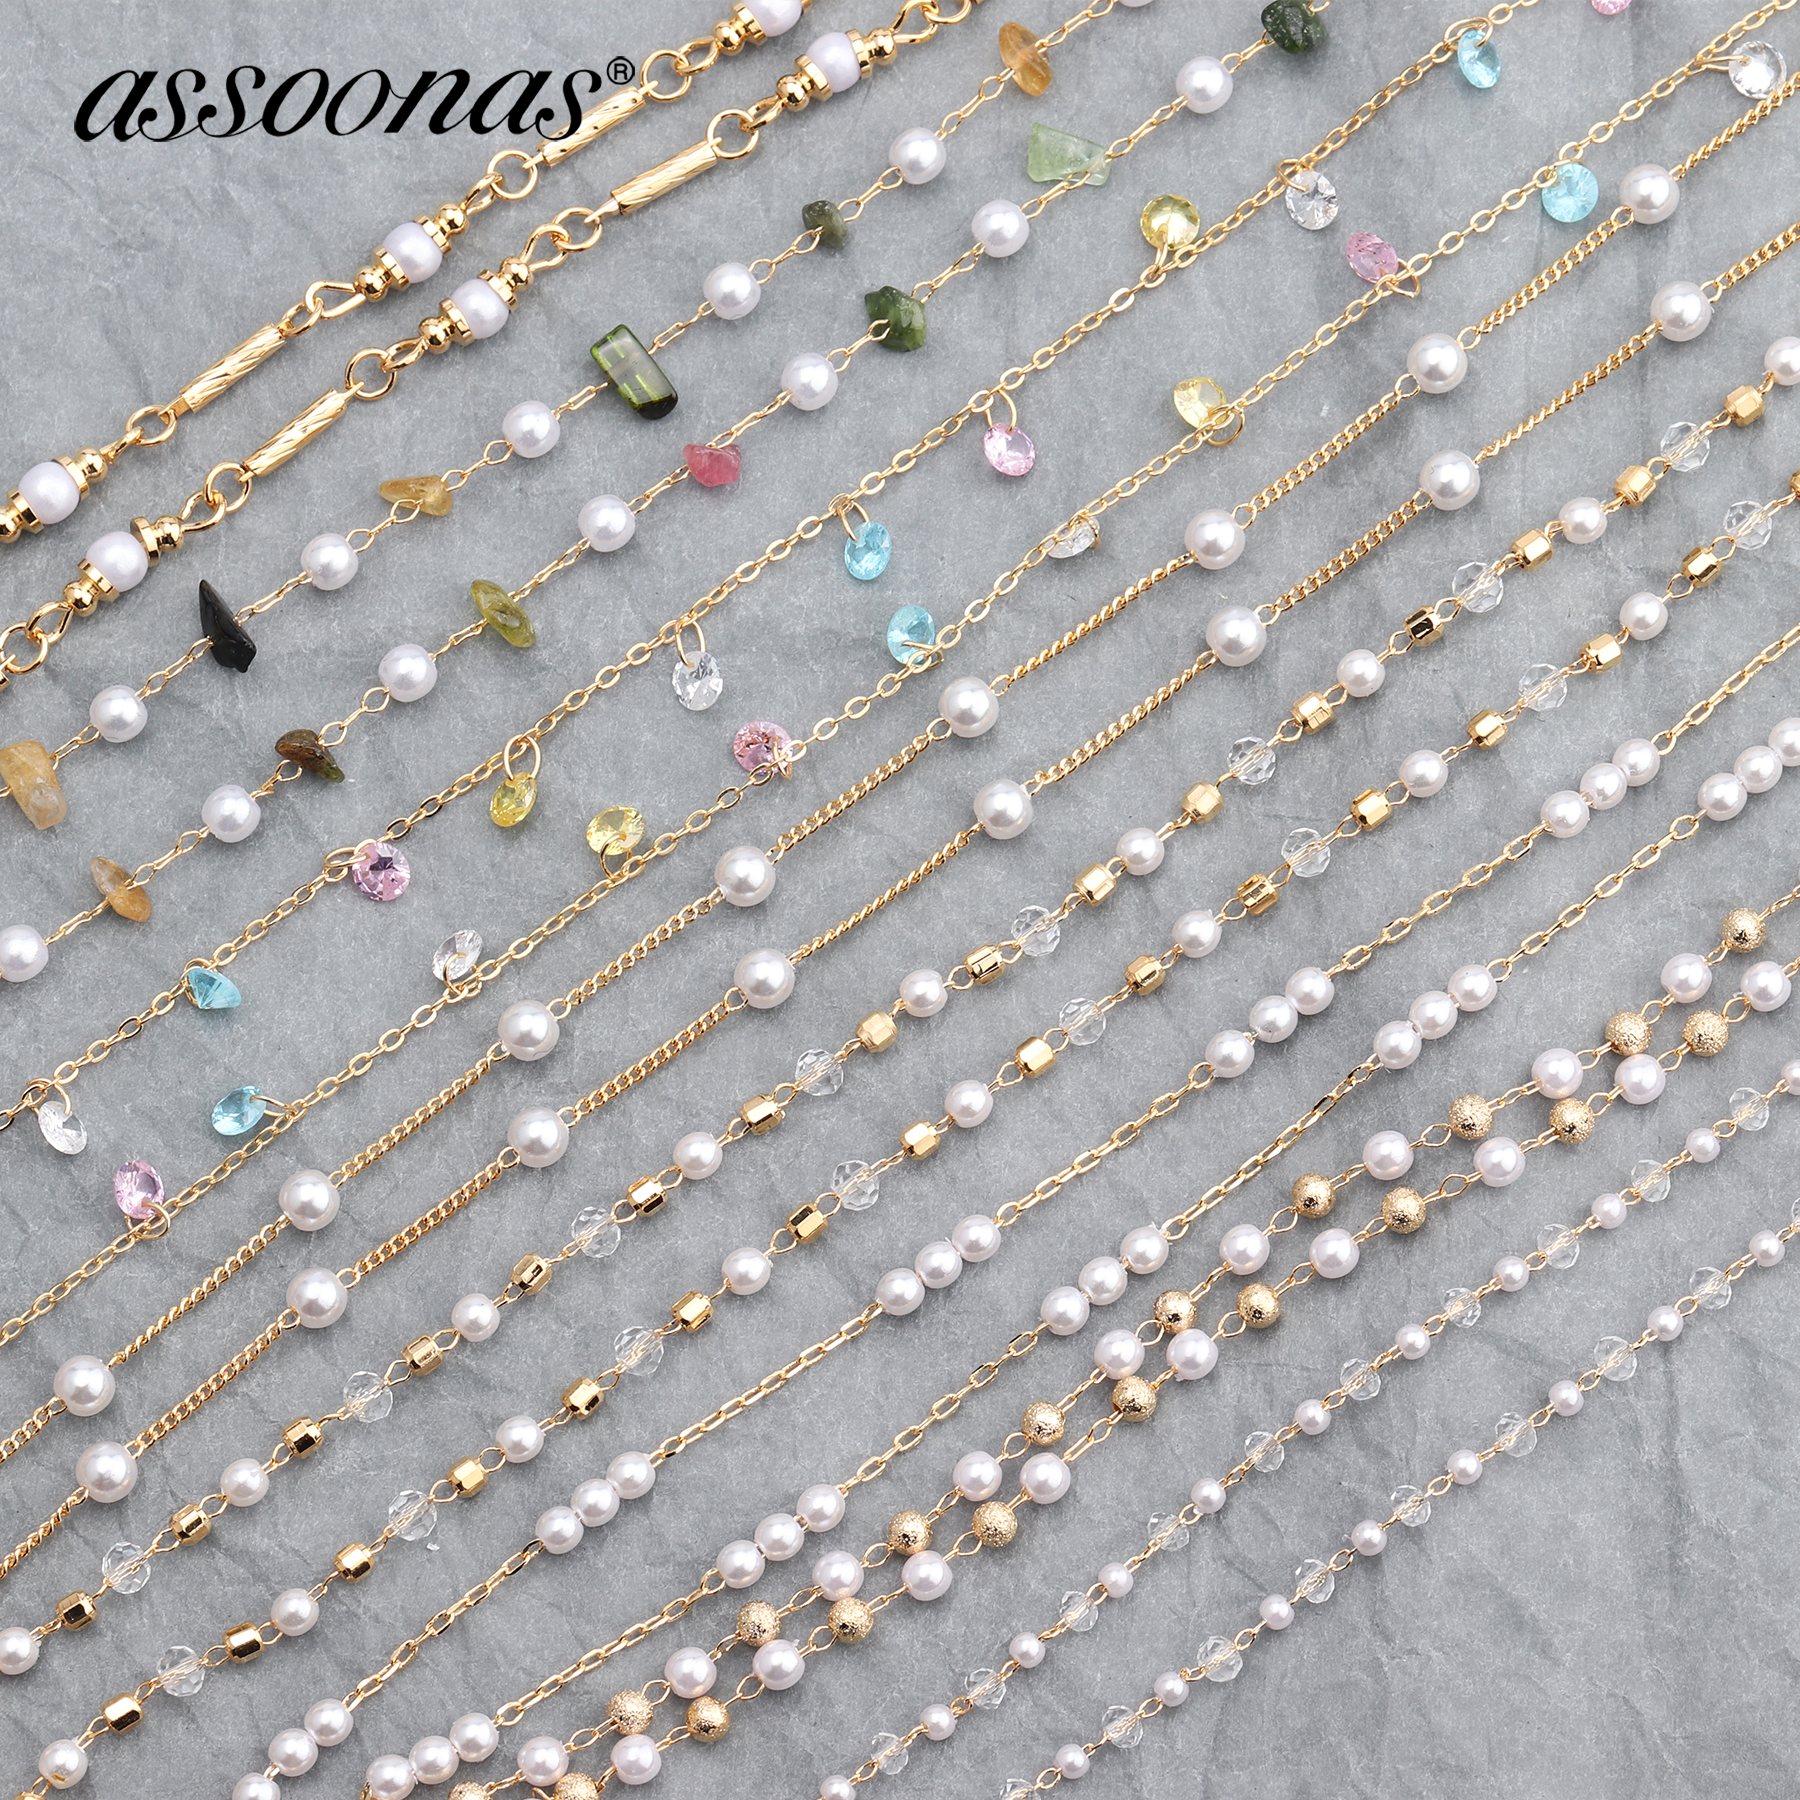 Assoonas C63,18K Gold Chain,diy Chain,jewelry Accessories,hand Made,jewelry Making,jewelry Findings,bracelet Necklace,1m/lot